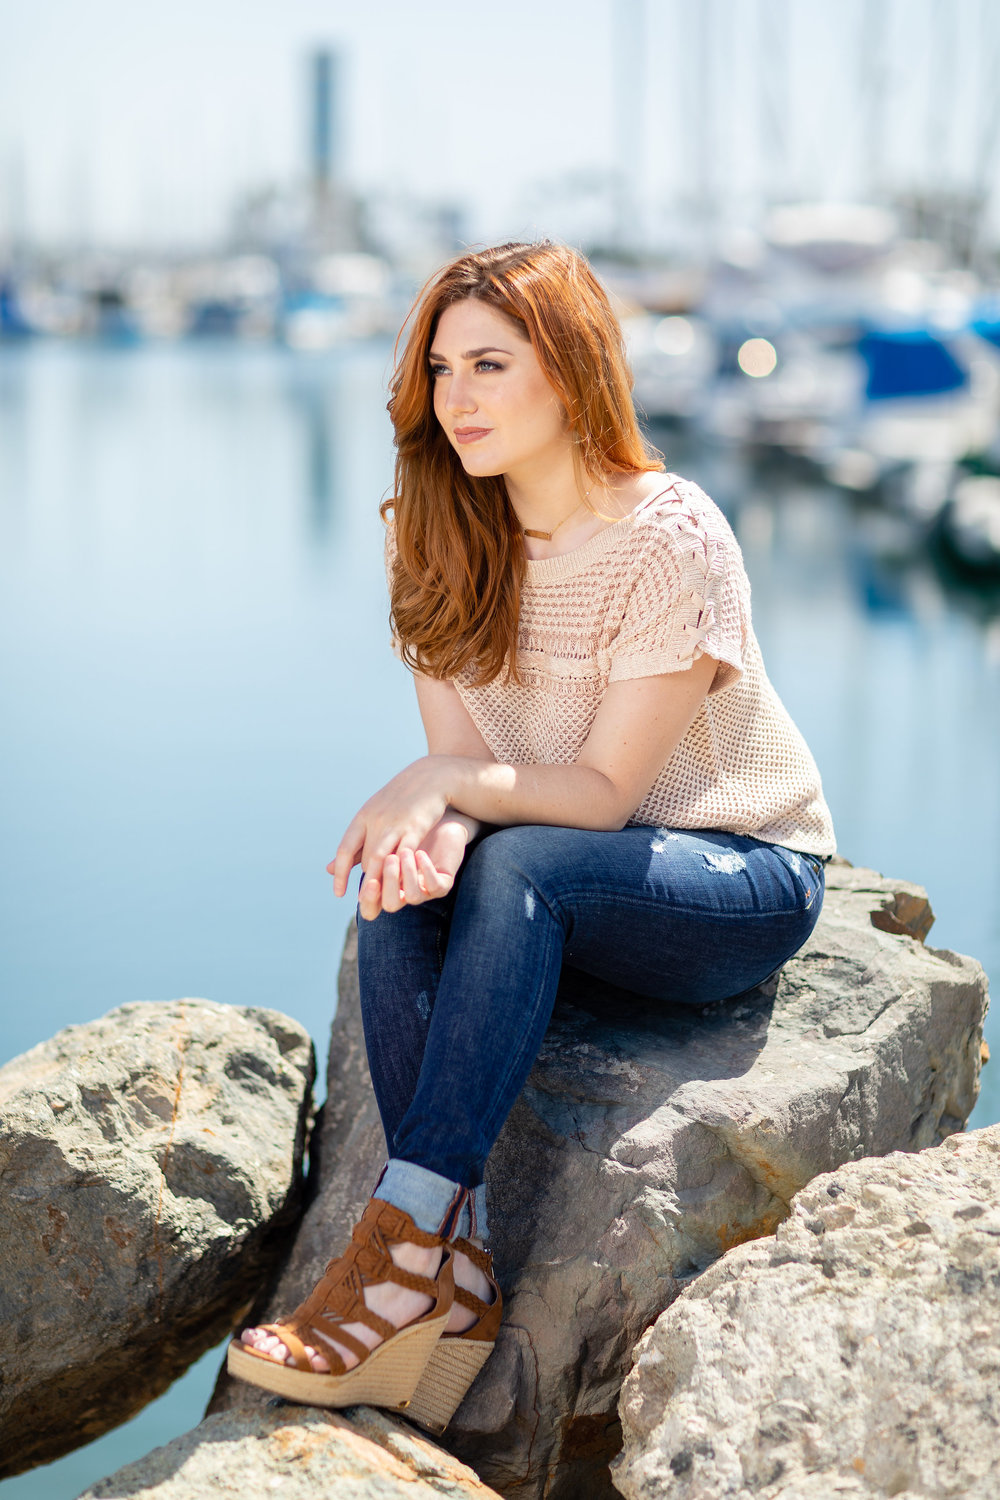 Beautiful woman with red hair.jpg